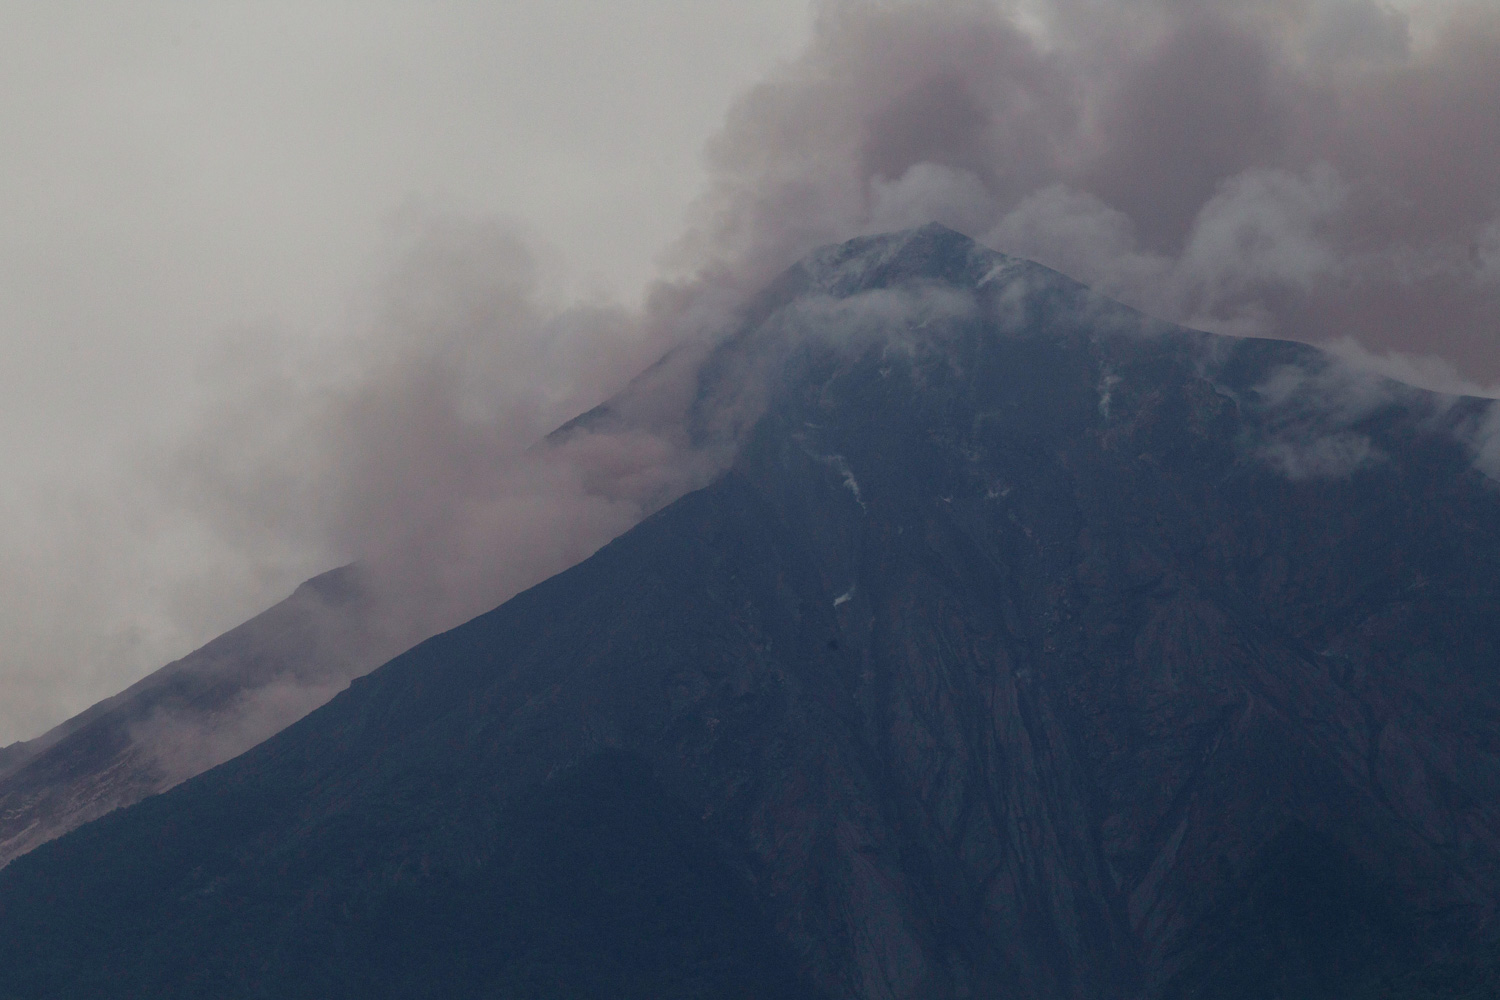 <div class='meta'><div class='origin-logo' data-origin='none'></div><span class='caption-text' data-credit='Luis Soto/AP Photo'>Volcan de Fuego, or Volcano of Fire, blows outs a thick cloud of ash, as seen from Alotenango, Guatemala, Sunday, June 3, 2018.</span></div>